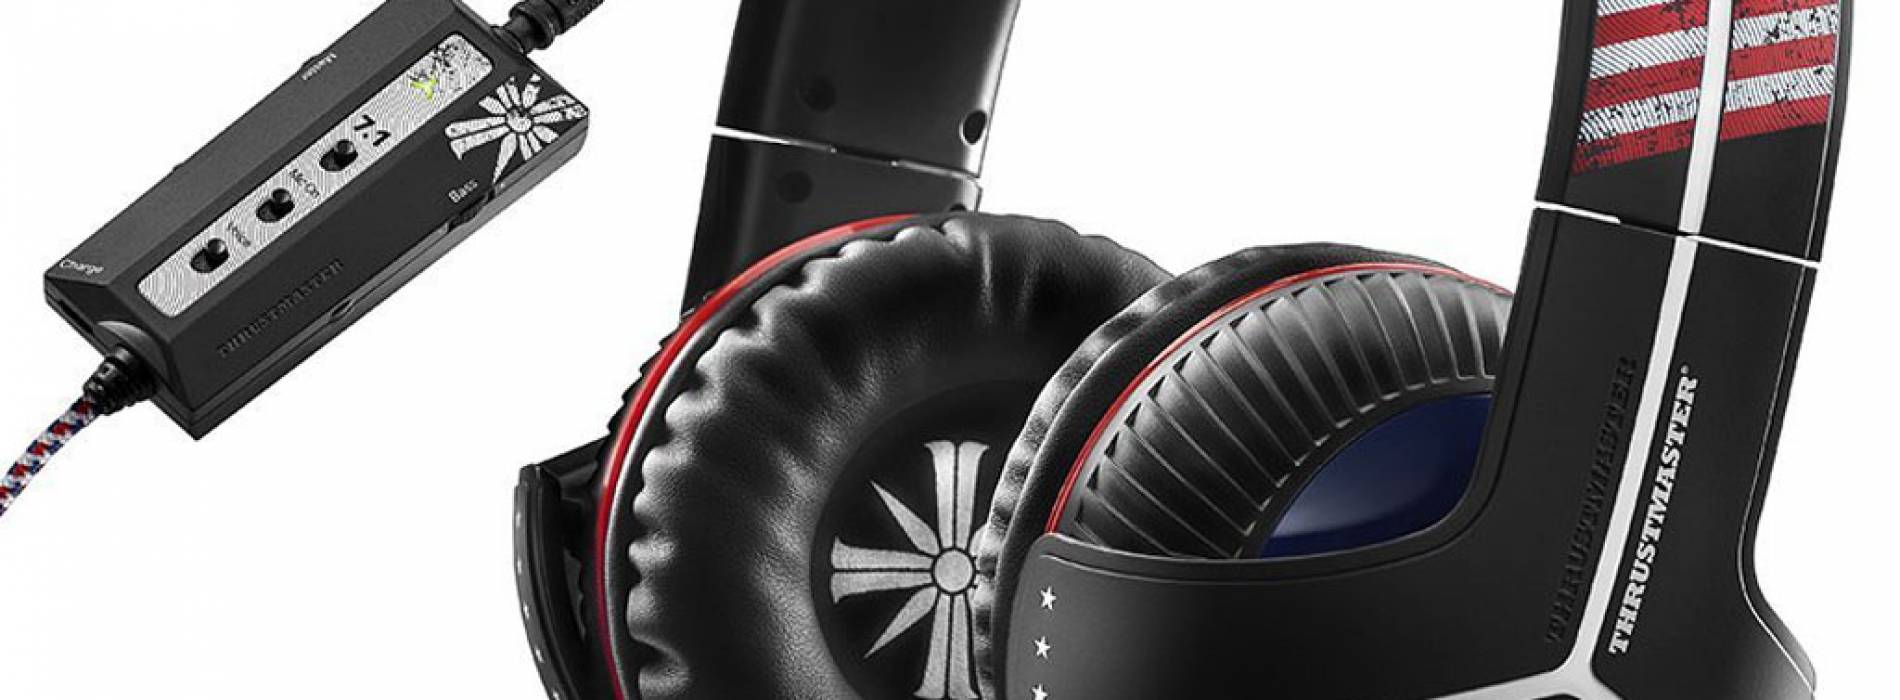 Concurso: Thrustmaster Y-350CPX Far Cry 5